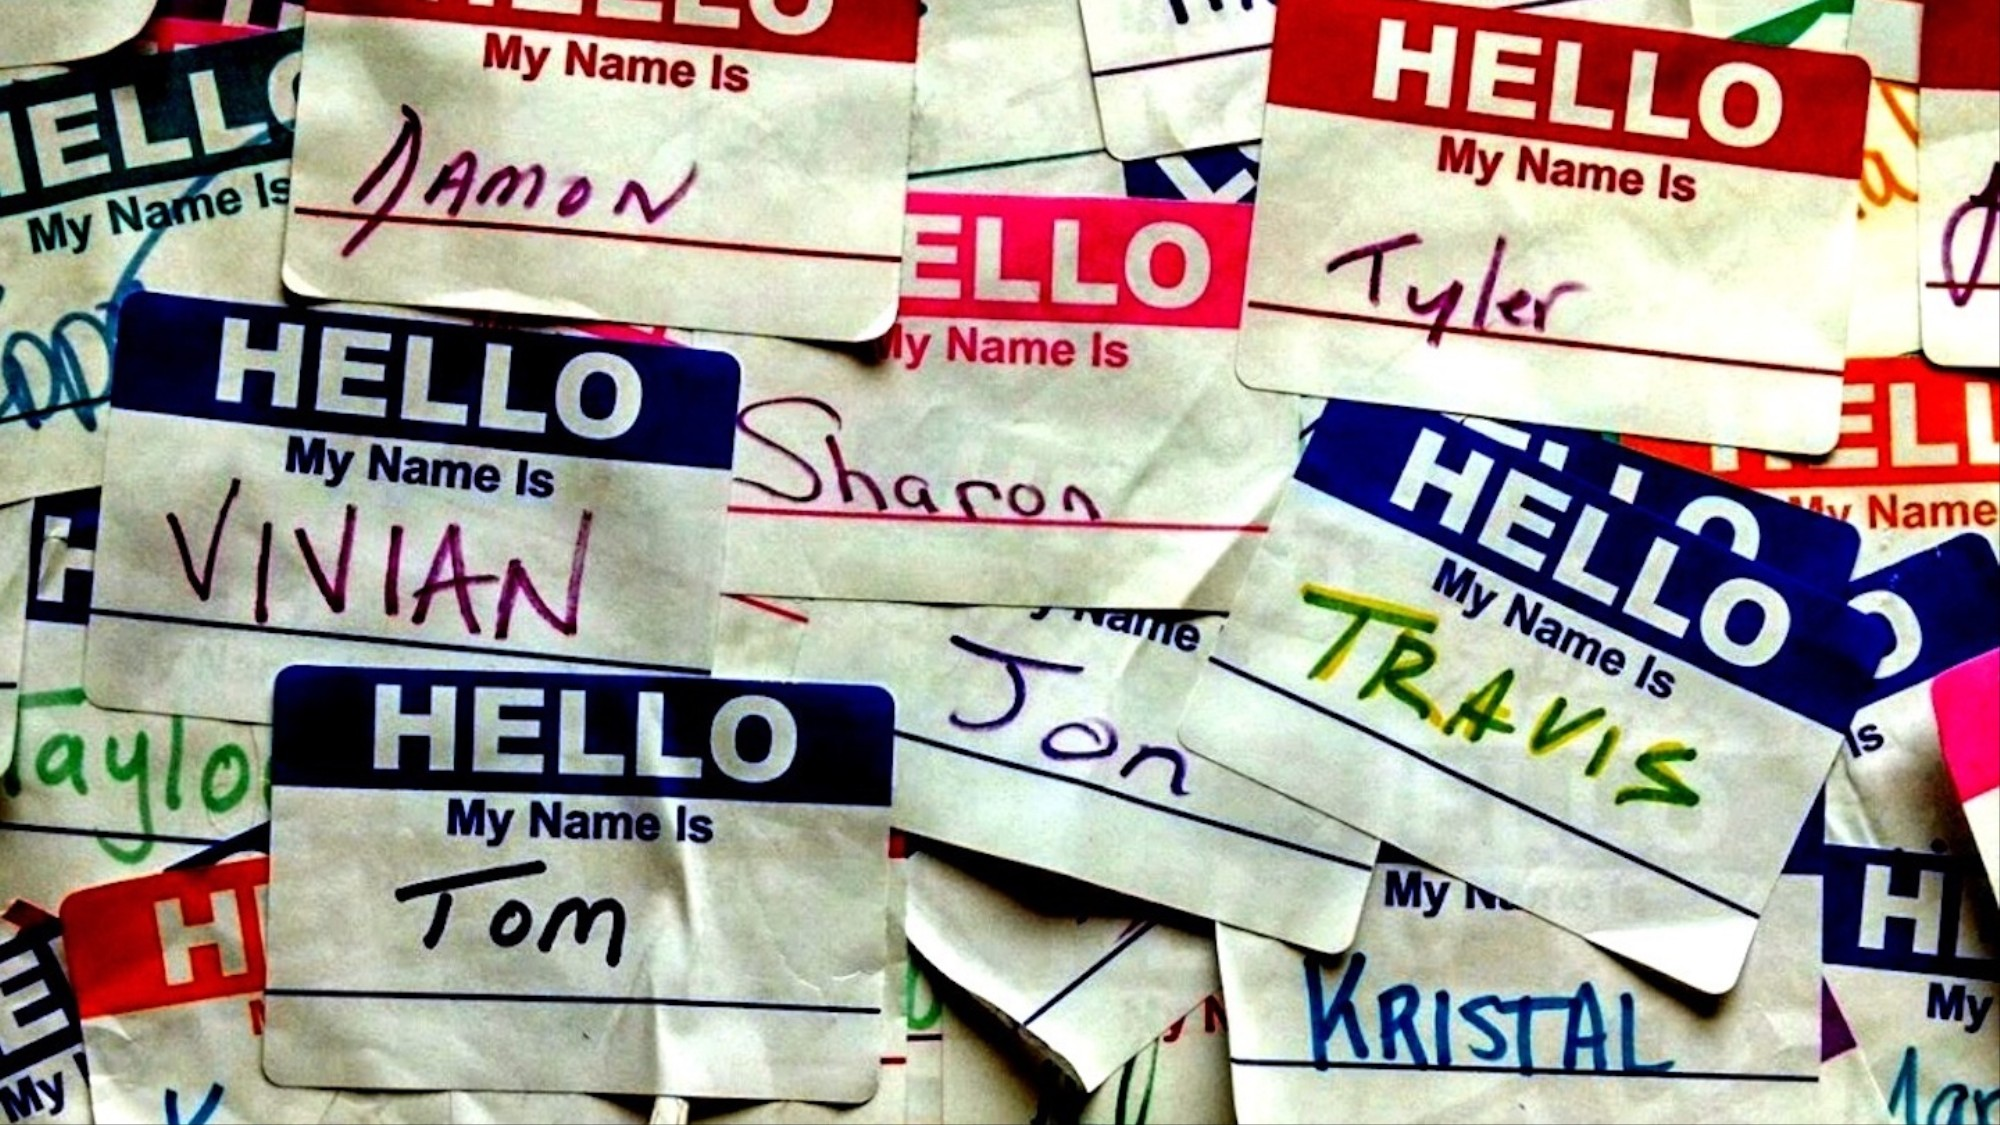 A Simple Guide to Pronouncing Unfamiliar Names - VICE